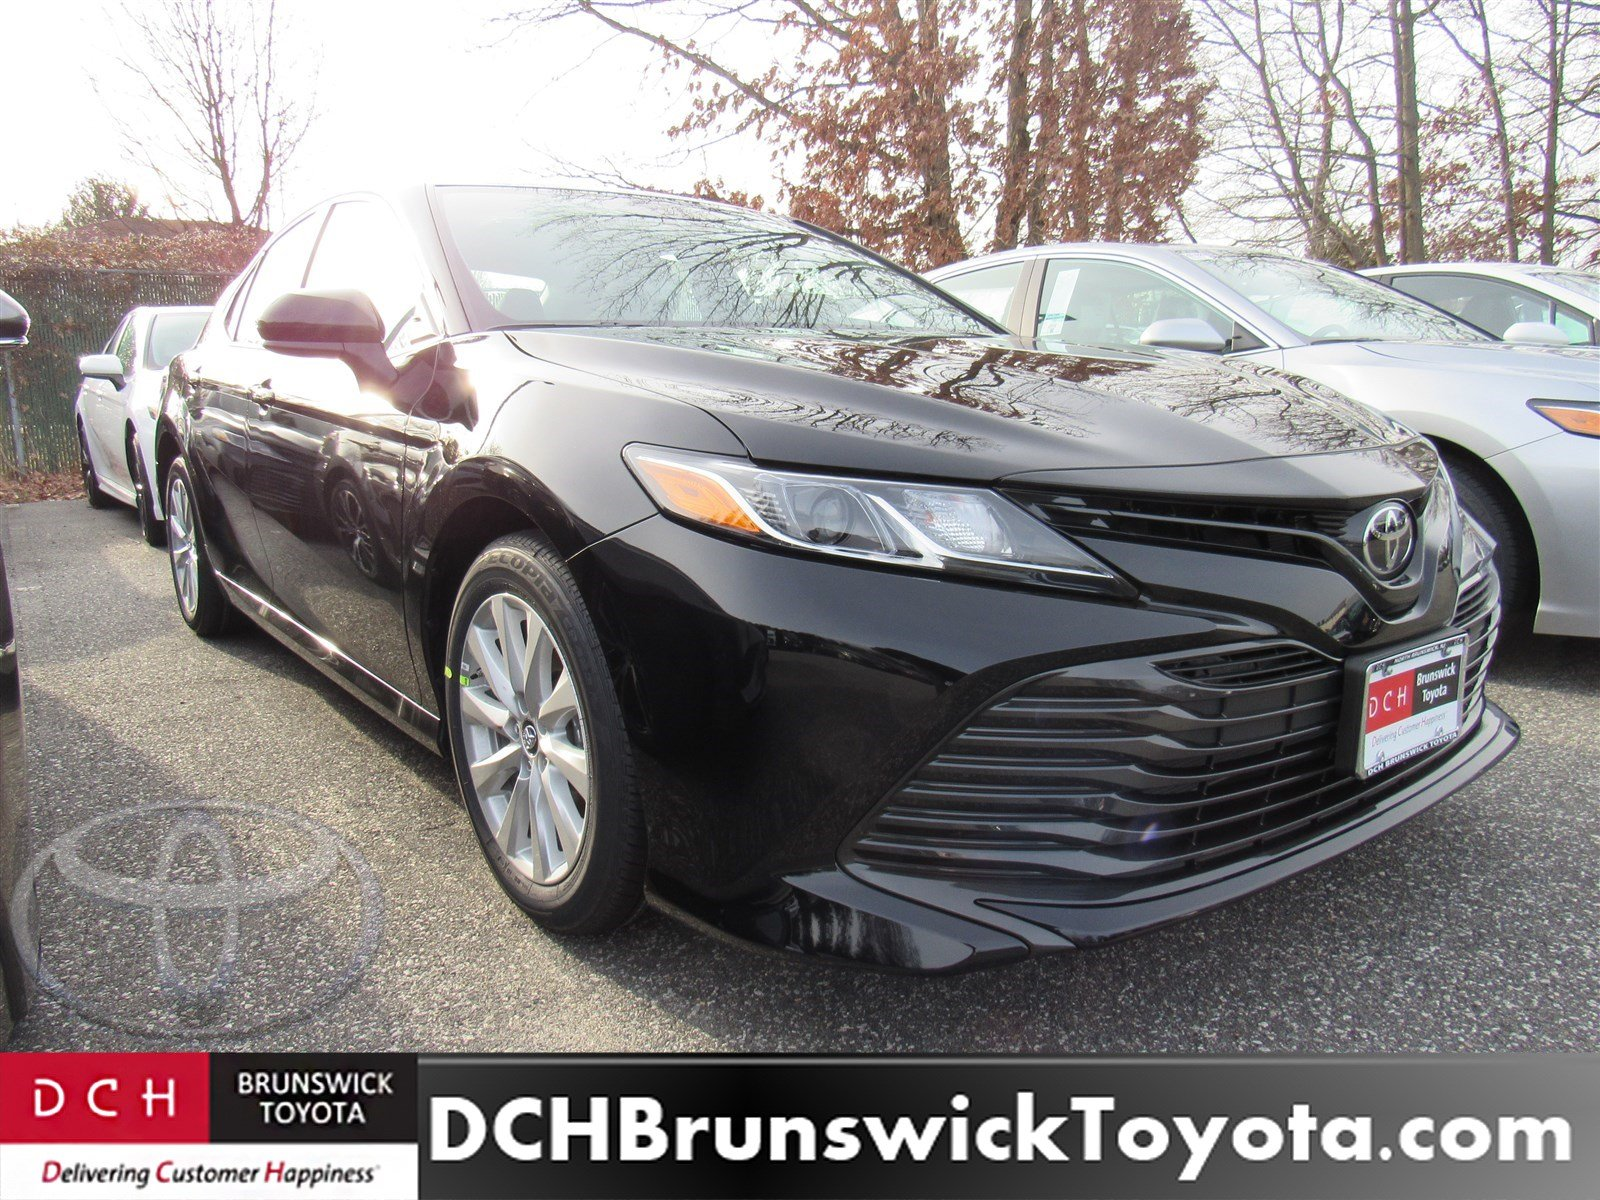 is the new camry all wheel drive kijang innova reborn 2019 toyota sedan midnight black for sale in north le front